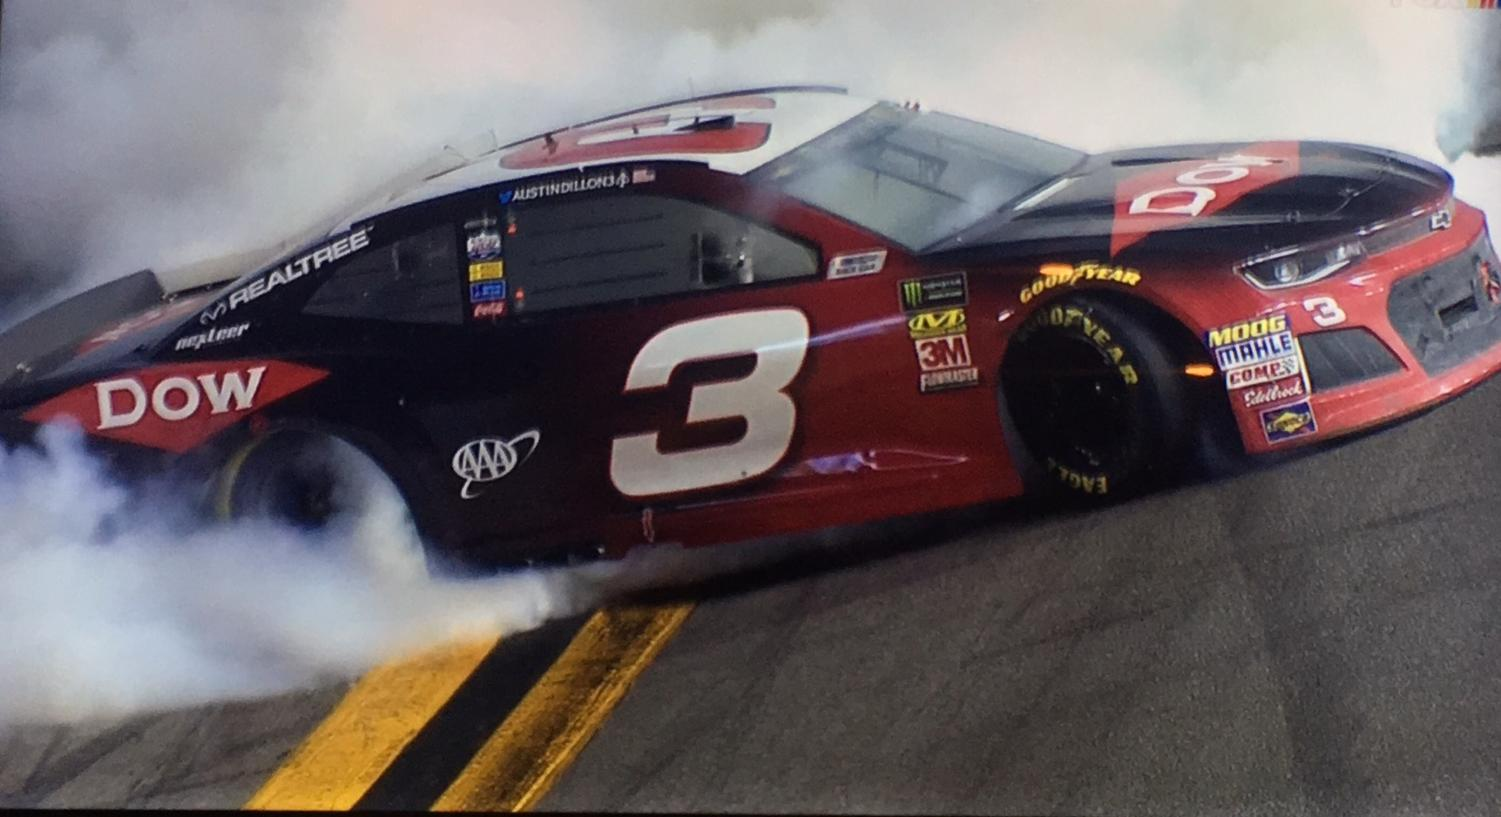 Dillon burns out on frontstretch after winning the Daytona 500.